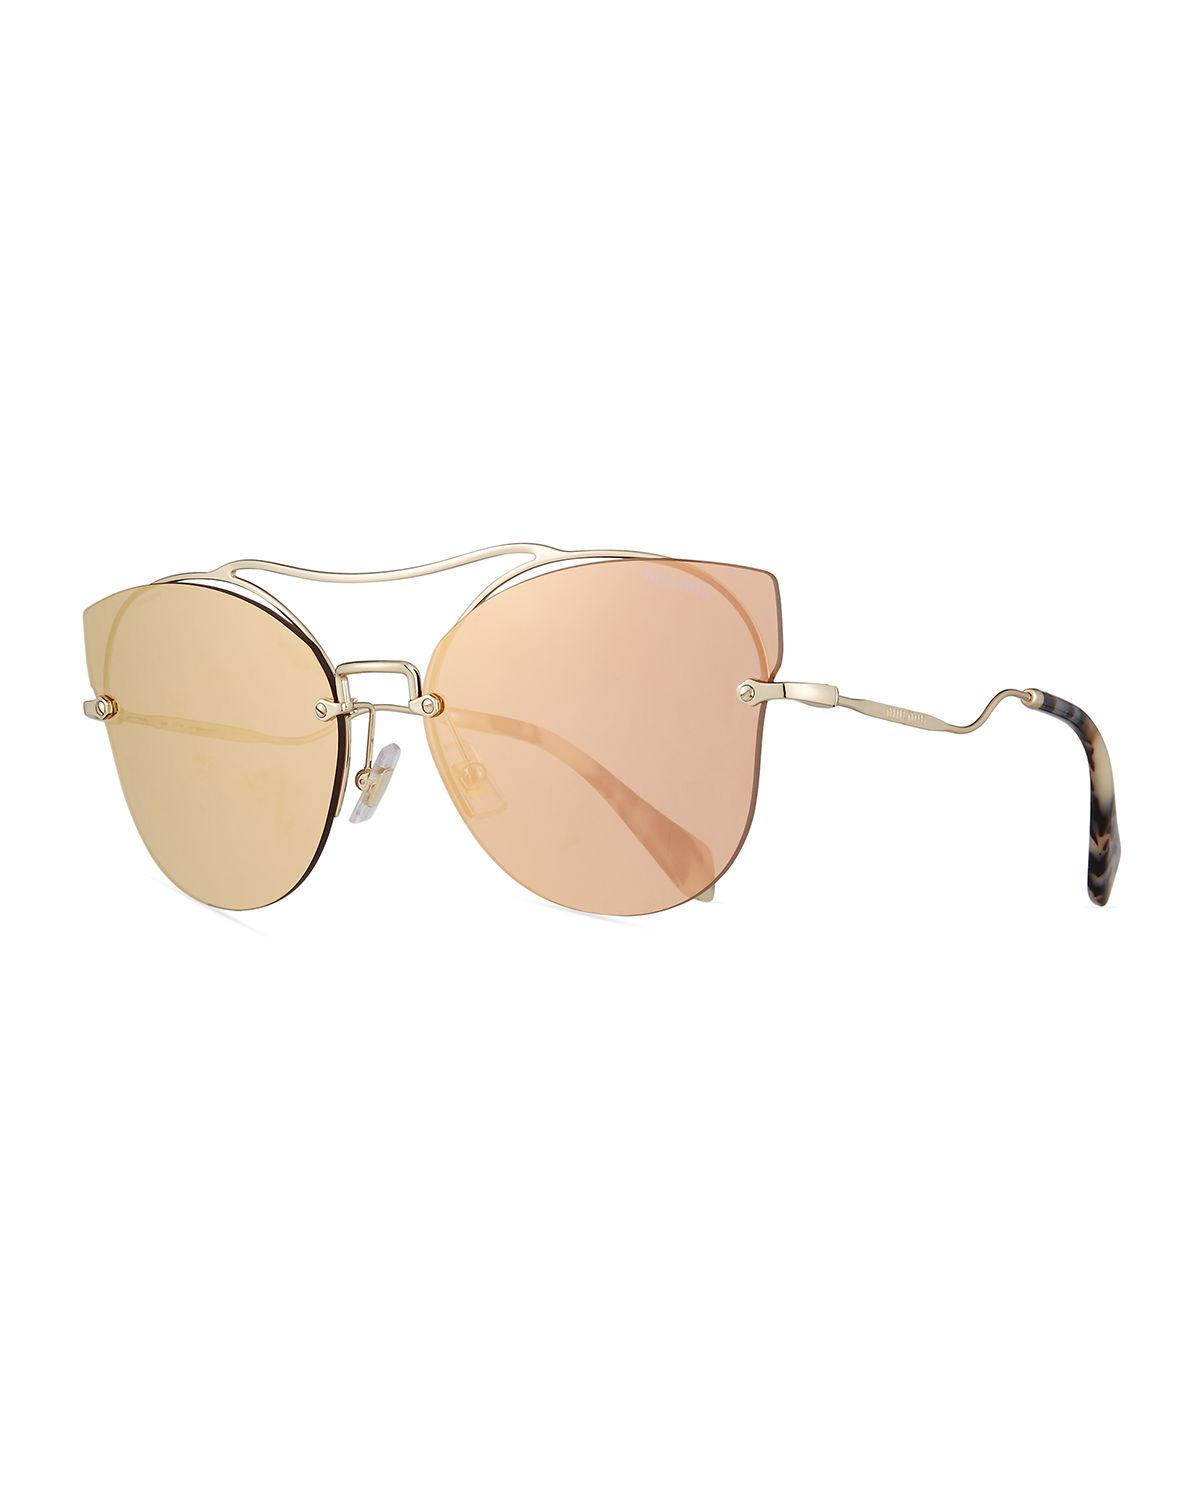 b3db9e8431c Lyst - Miu Miu Scenique Rimless Mirrored Brow-bar Sunglasses in Yellow